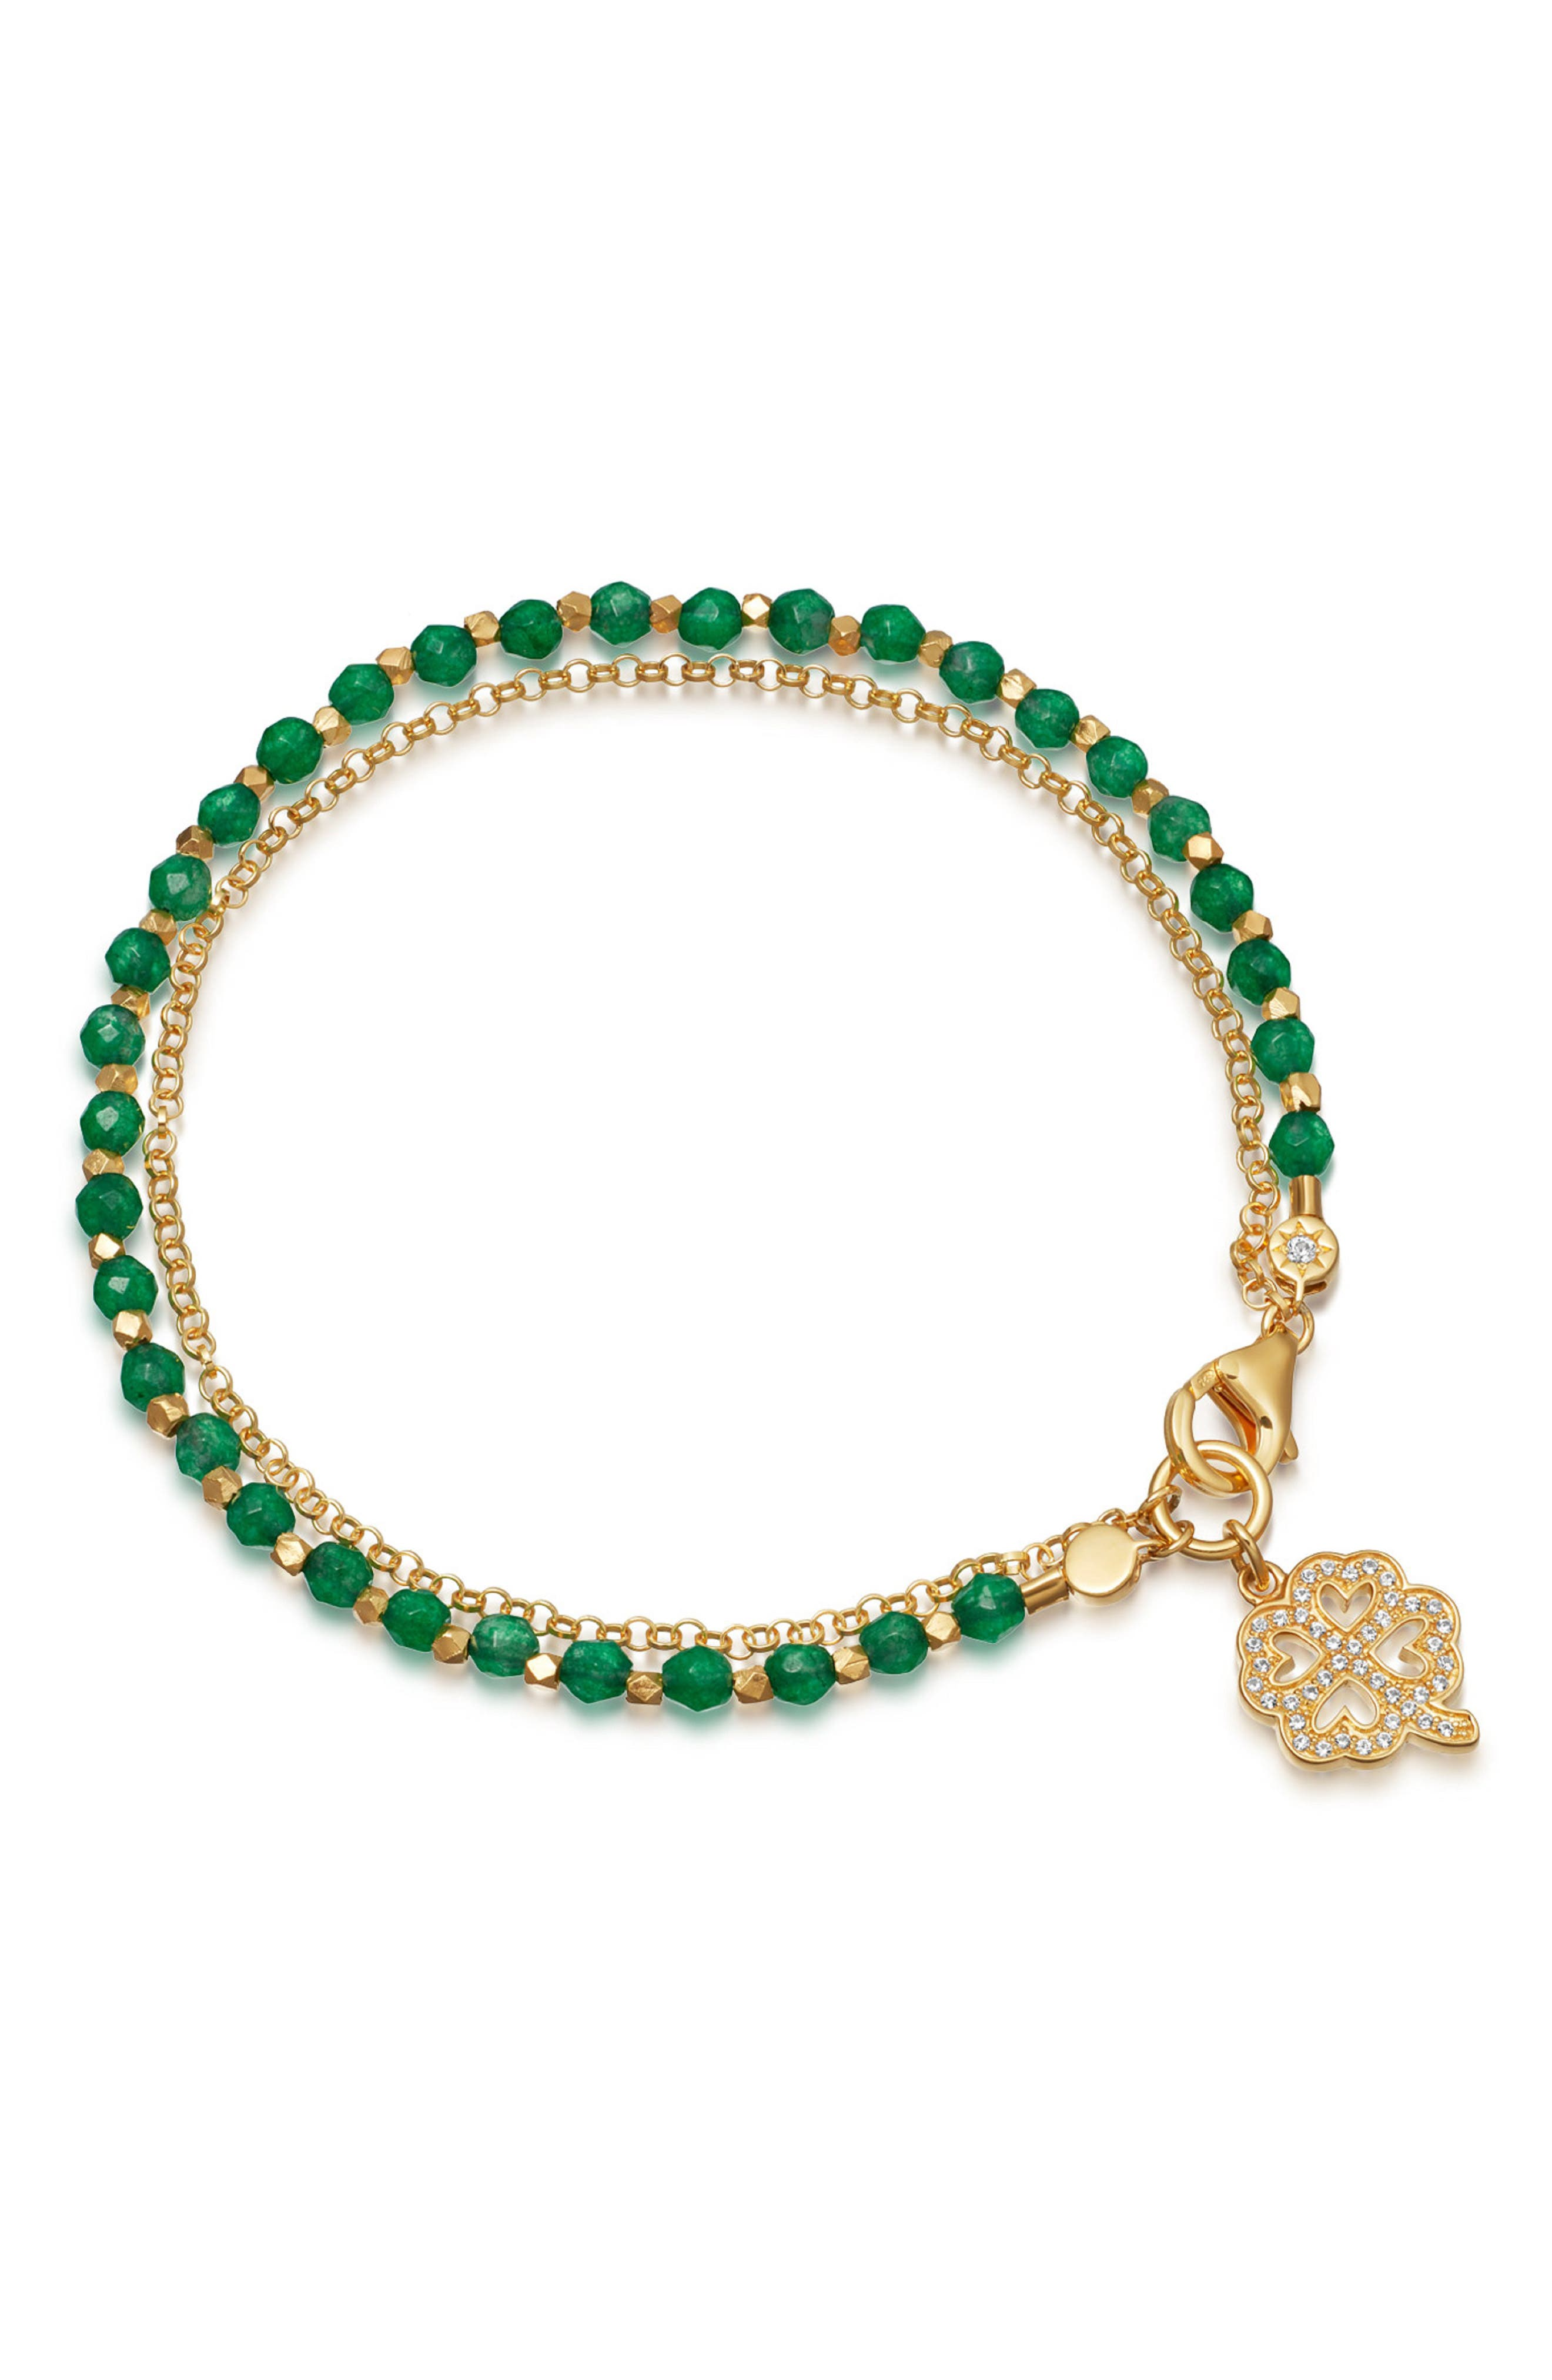 Green Onyx Clover Bracelet,                             Main thumbnail 1, color,                             YELLOW GOLD/ GREEN ONYX